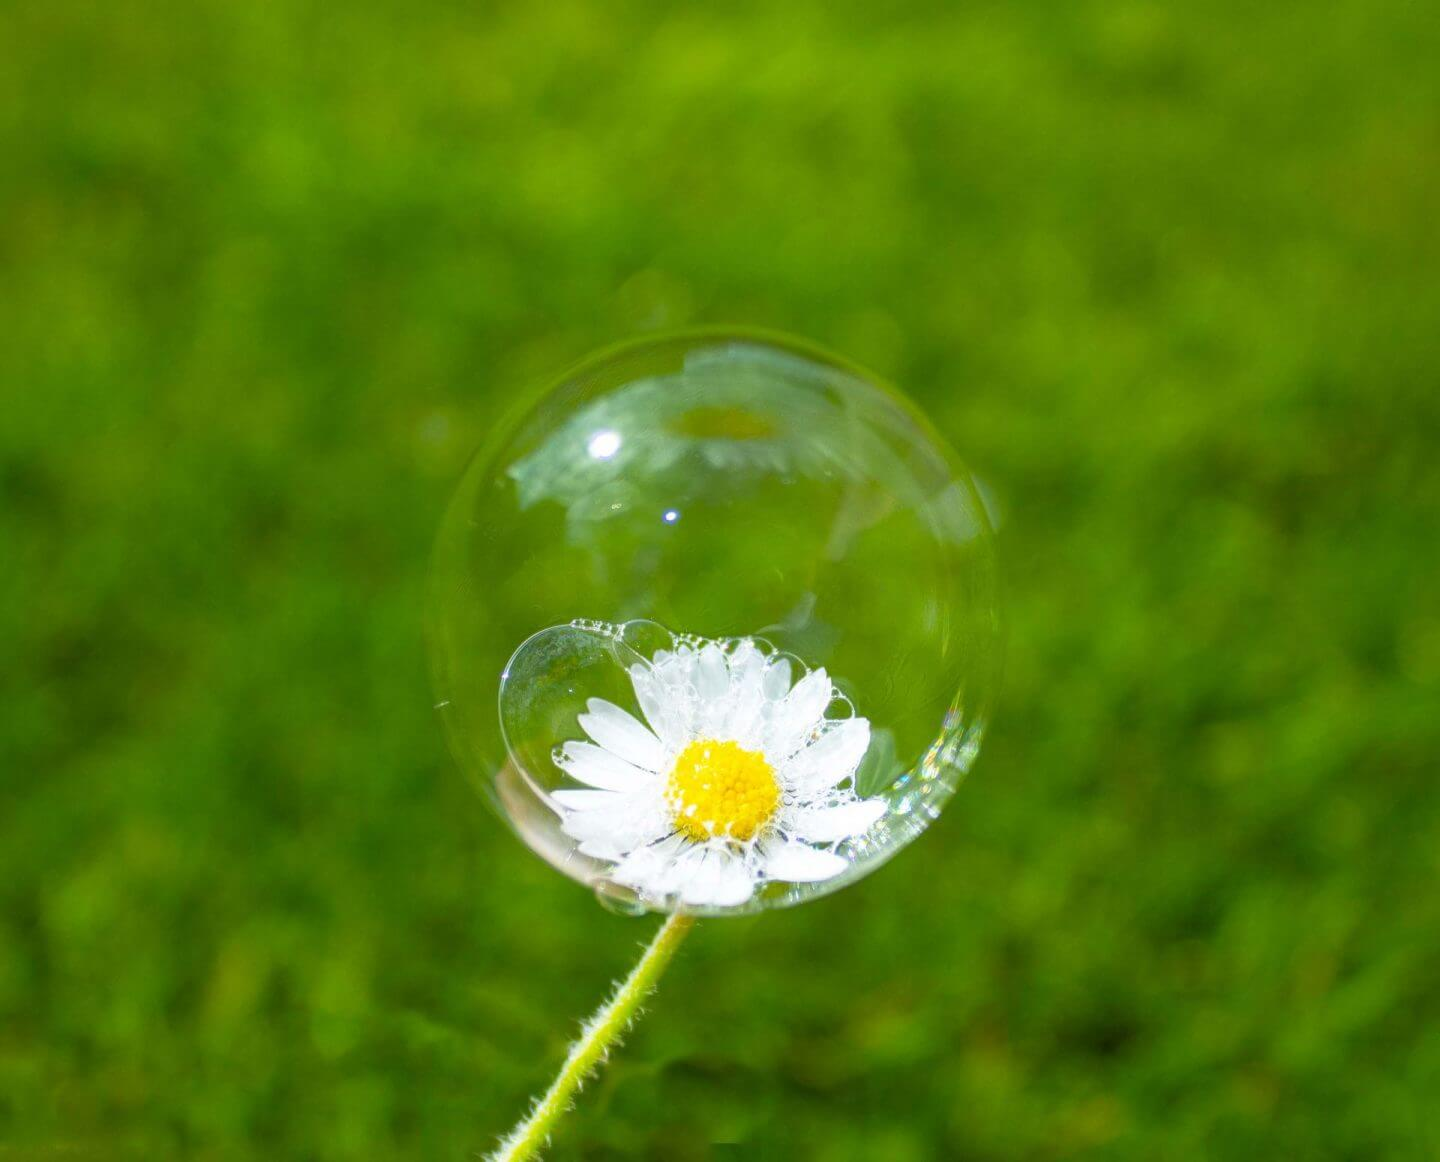 I'm forever blowing bubbles. Bubble on a daisy.